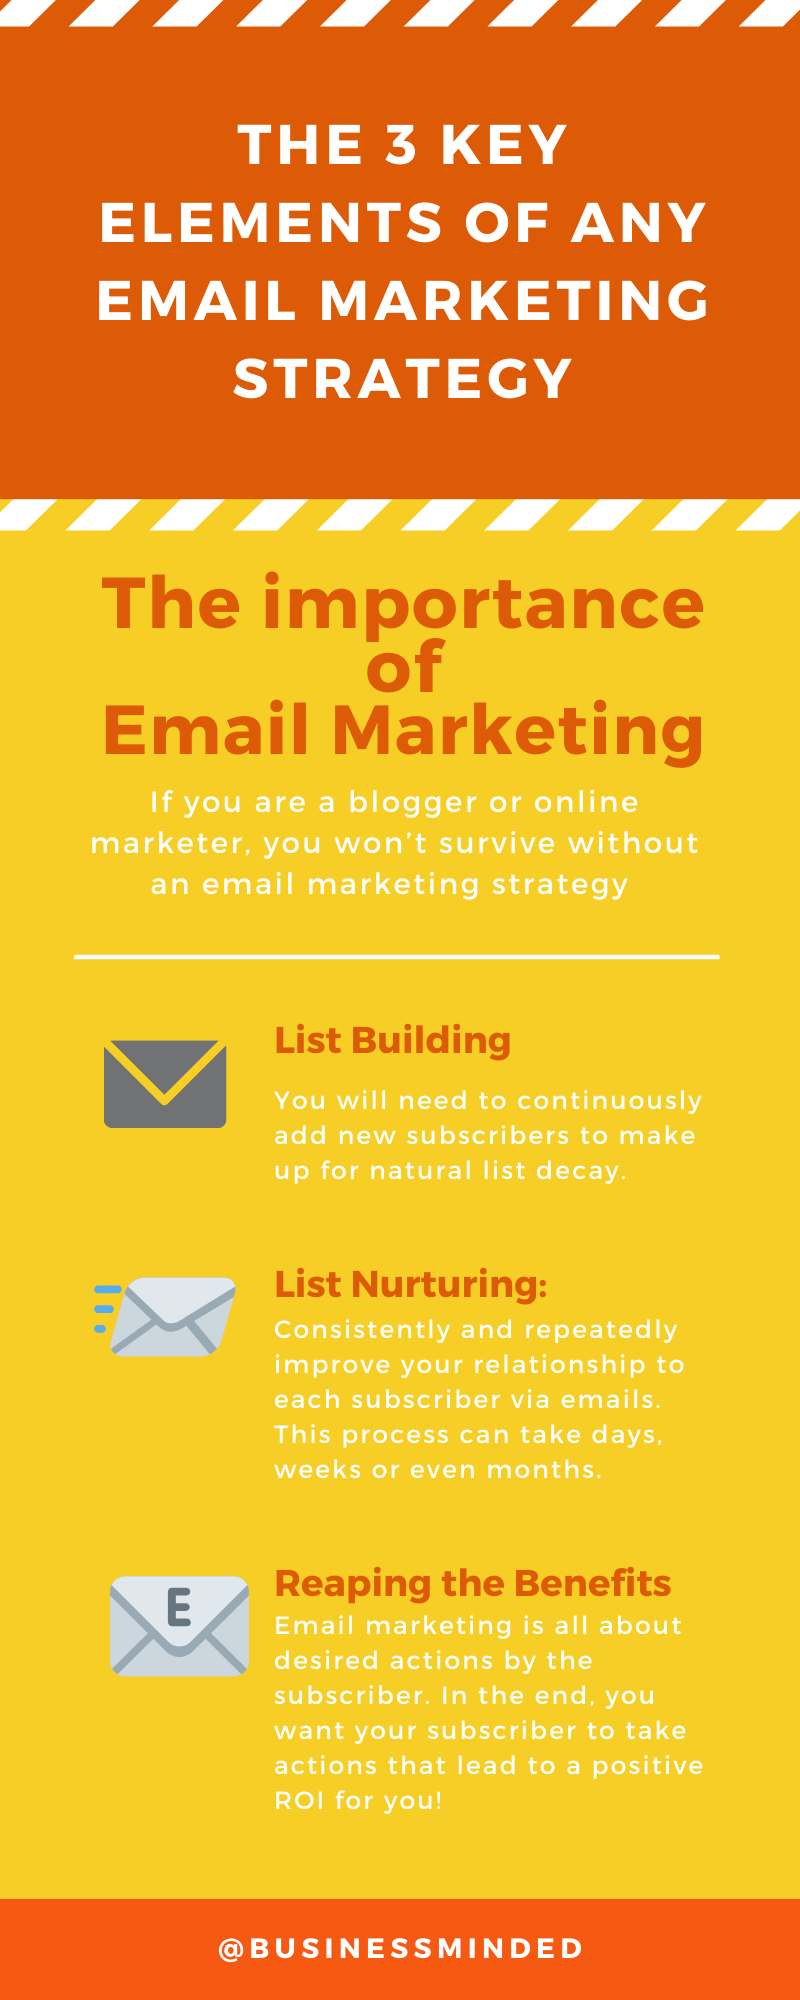 an overview of how good email marketing works and how you can start doing great email marketing yourself. We will start with a quick overview of the key elements of email marketing #emailmarketing #newslettermarketing #listbuilding #salesfunnel #leadgeneration